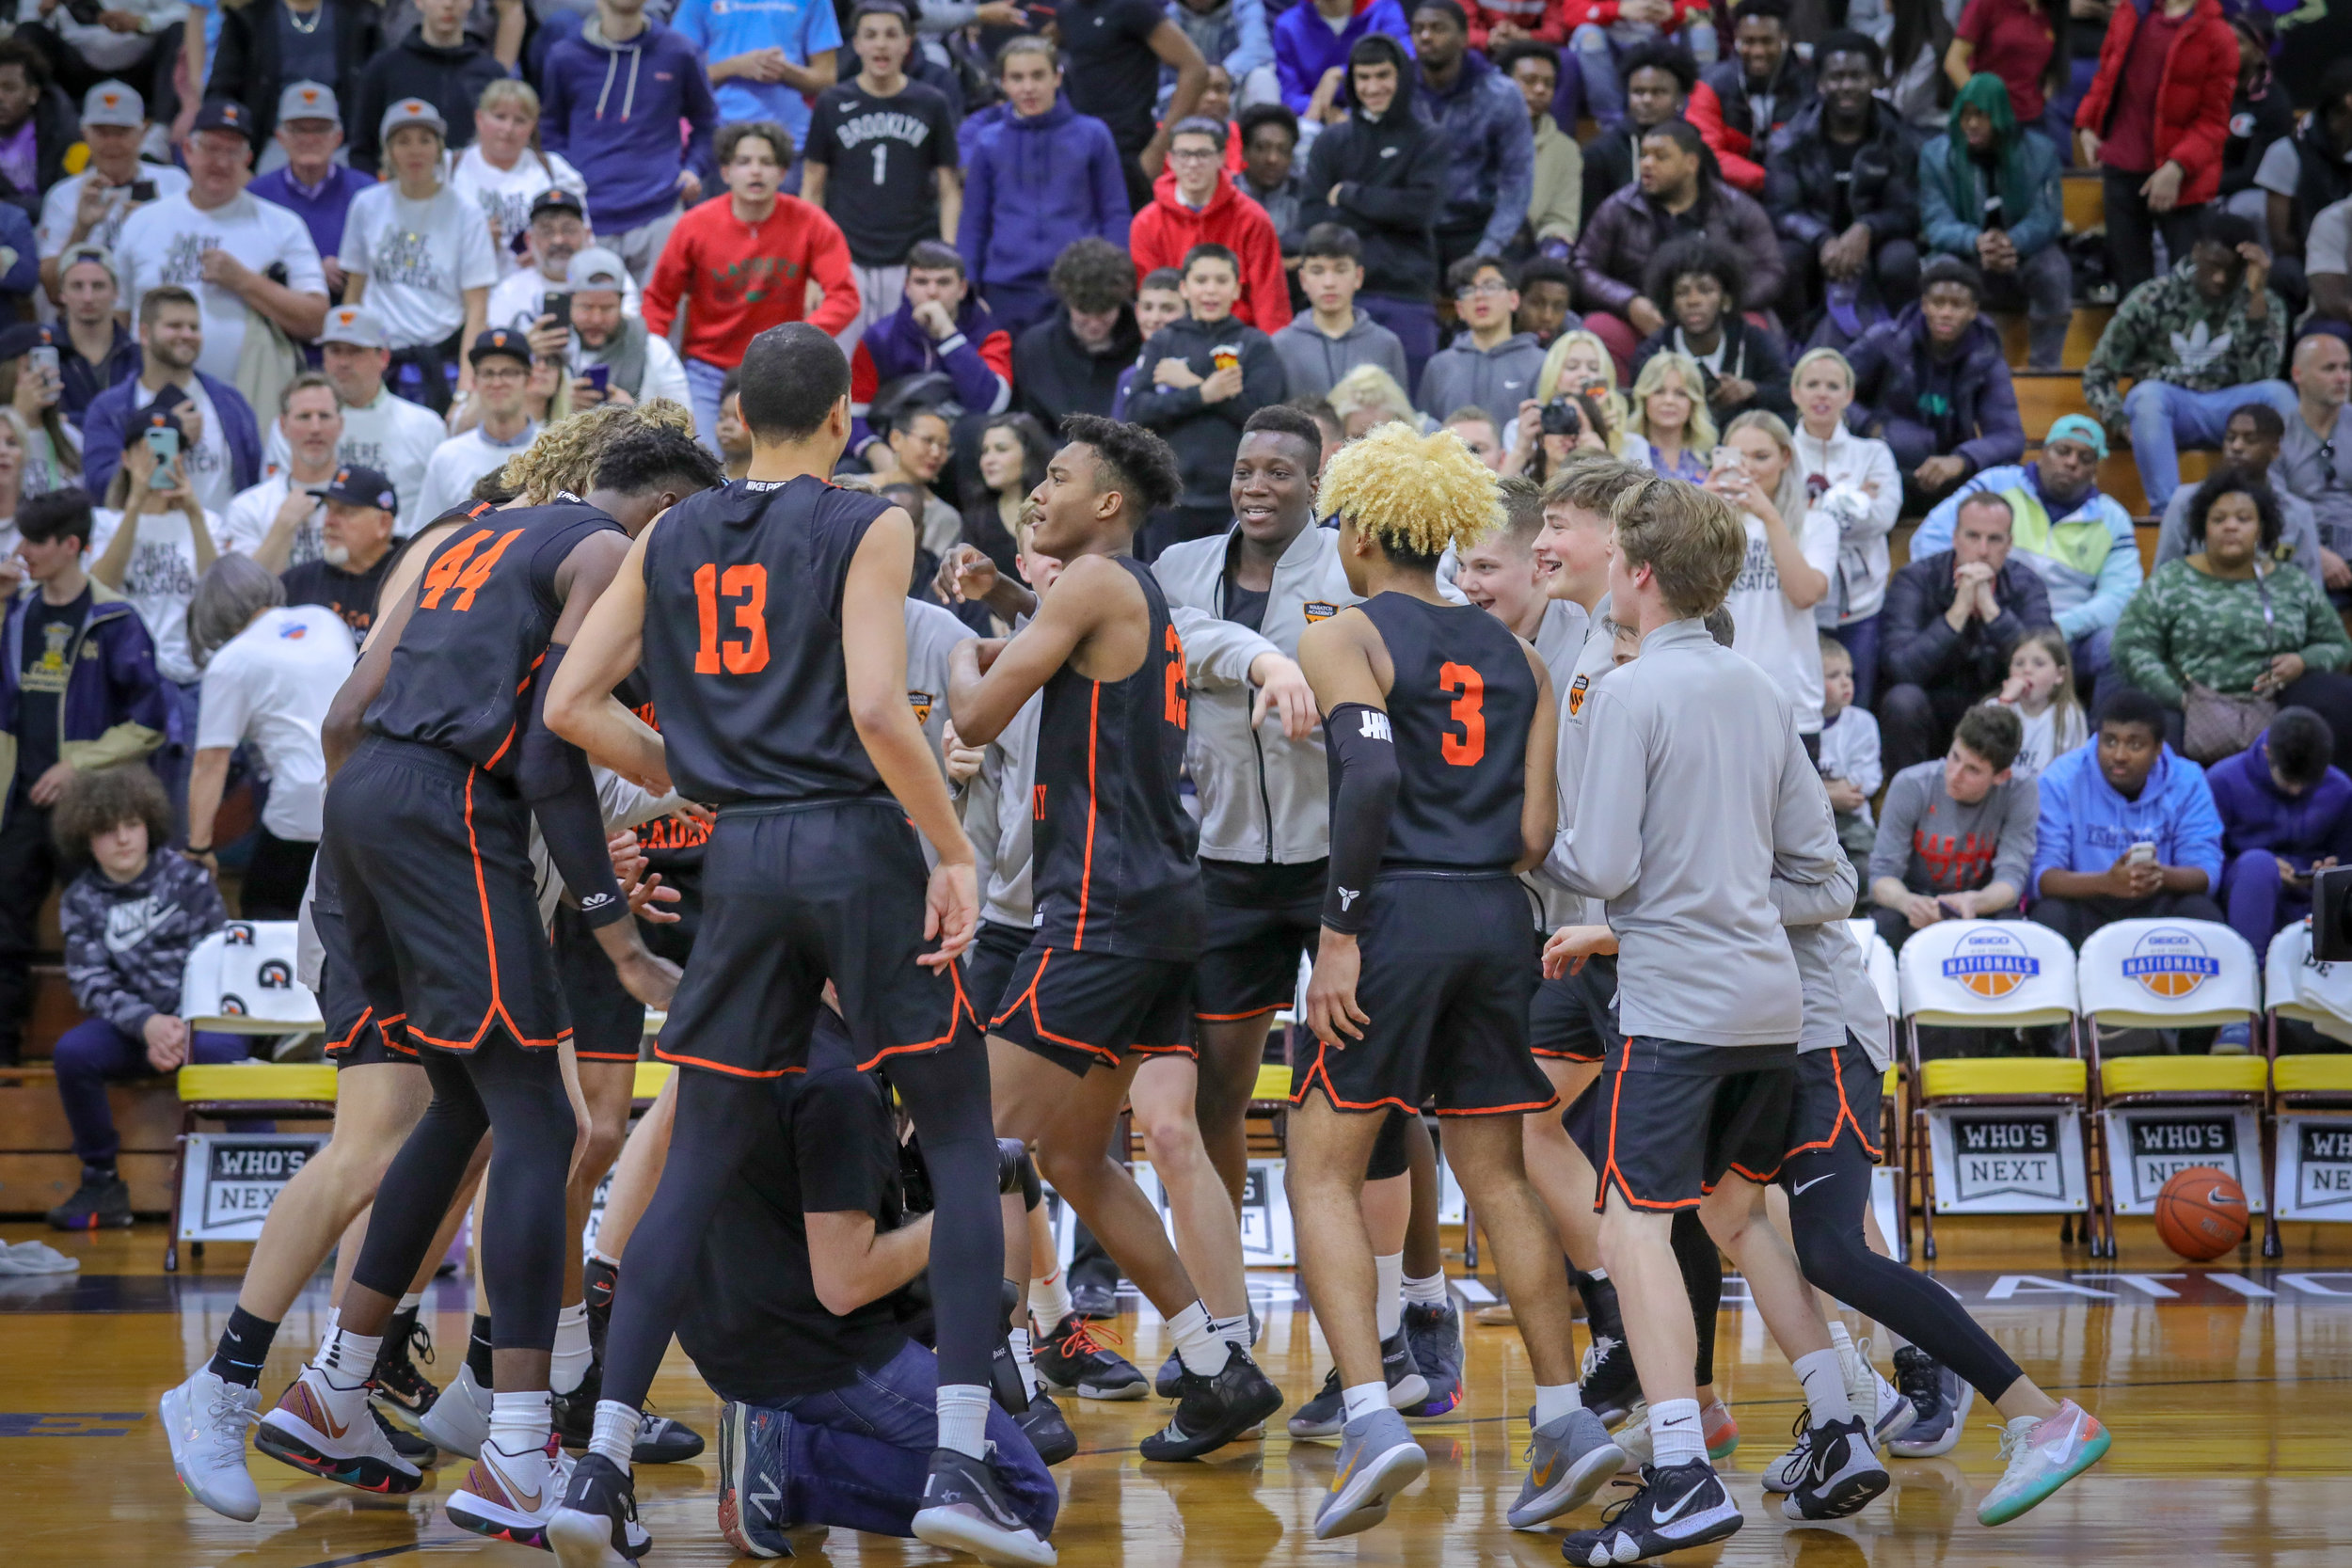 BBall_Geico_Nationals_2019 (18 of 59).jpg